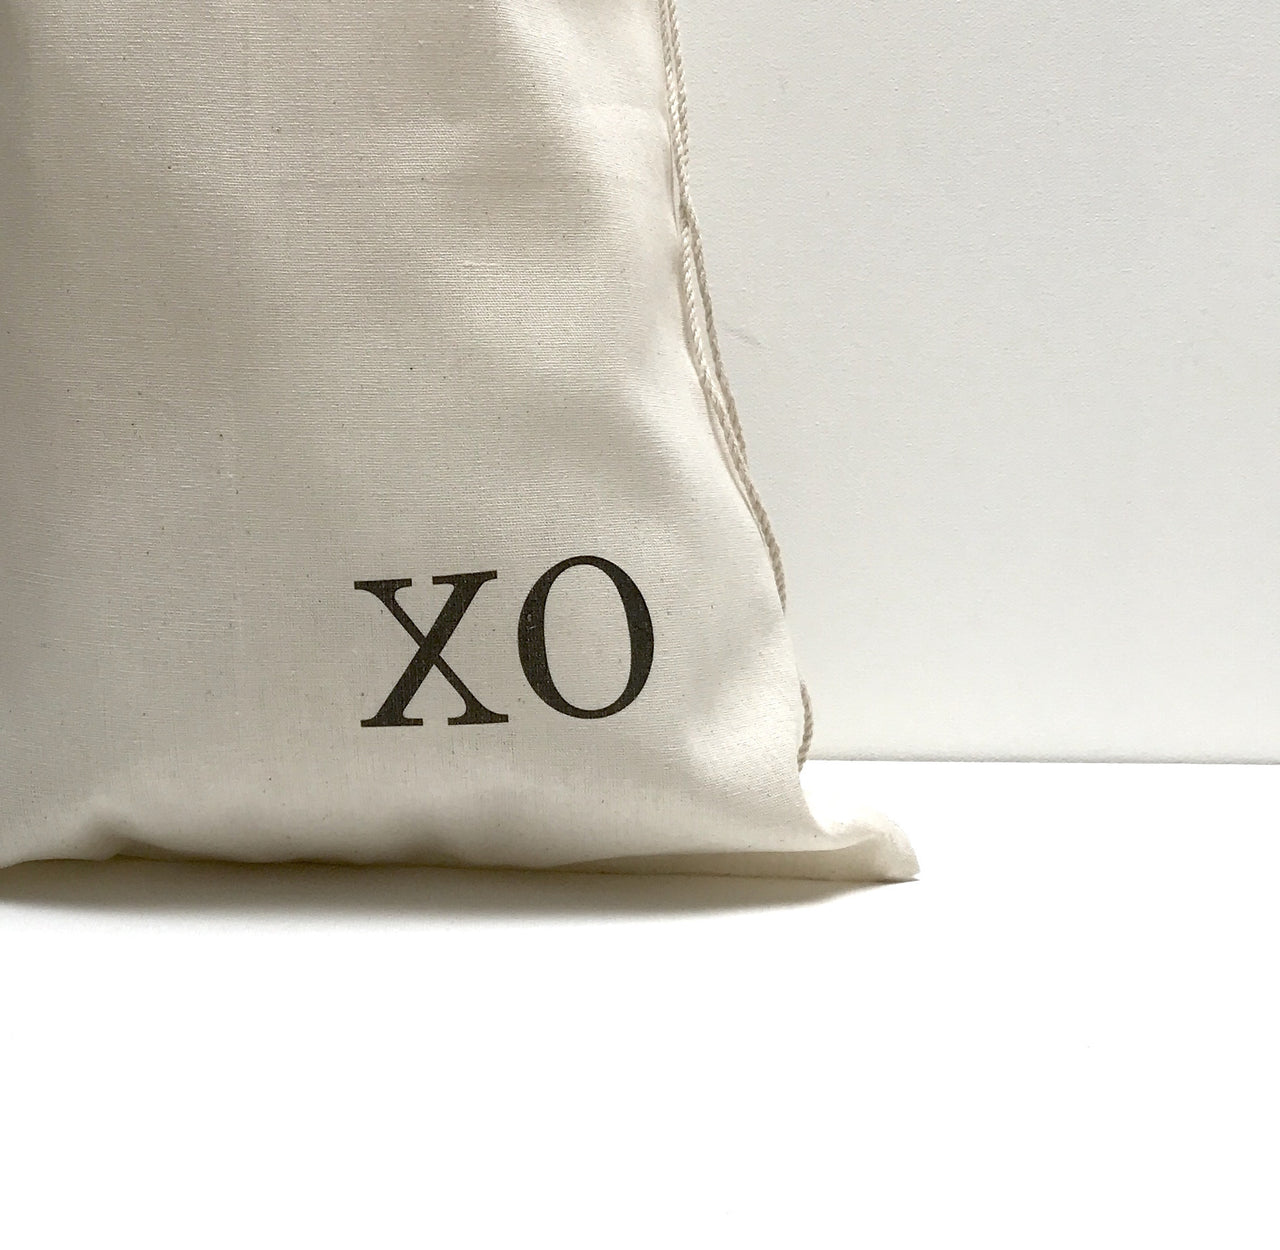 xo cotton bags